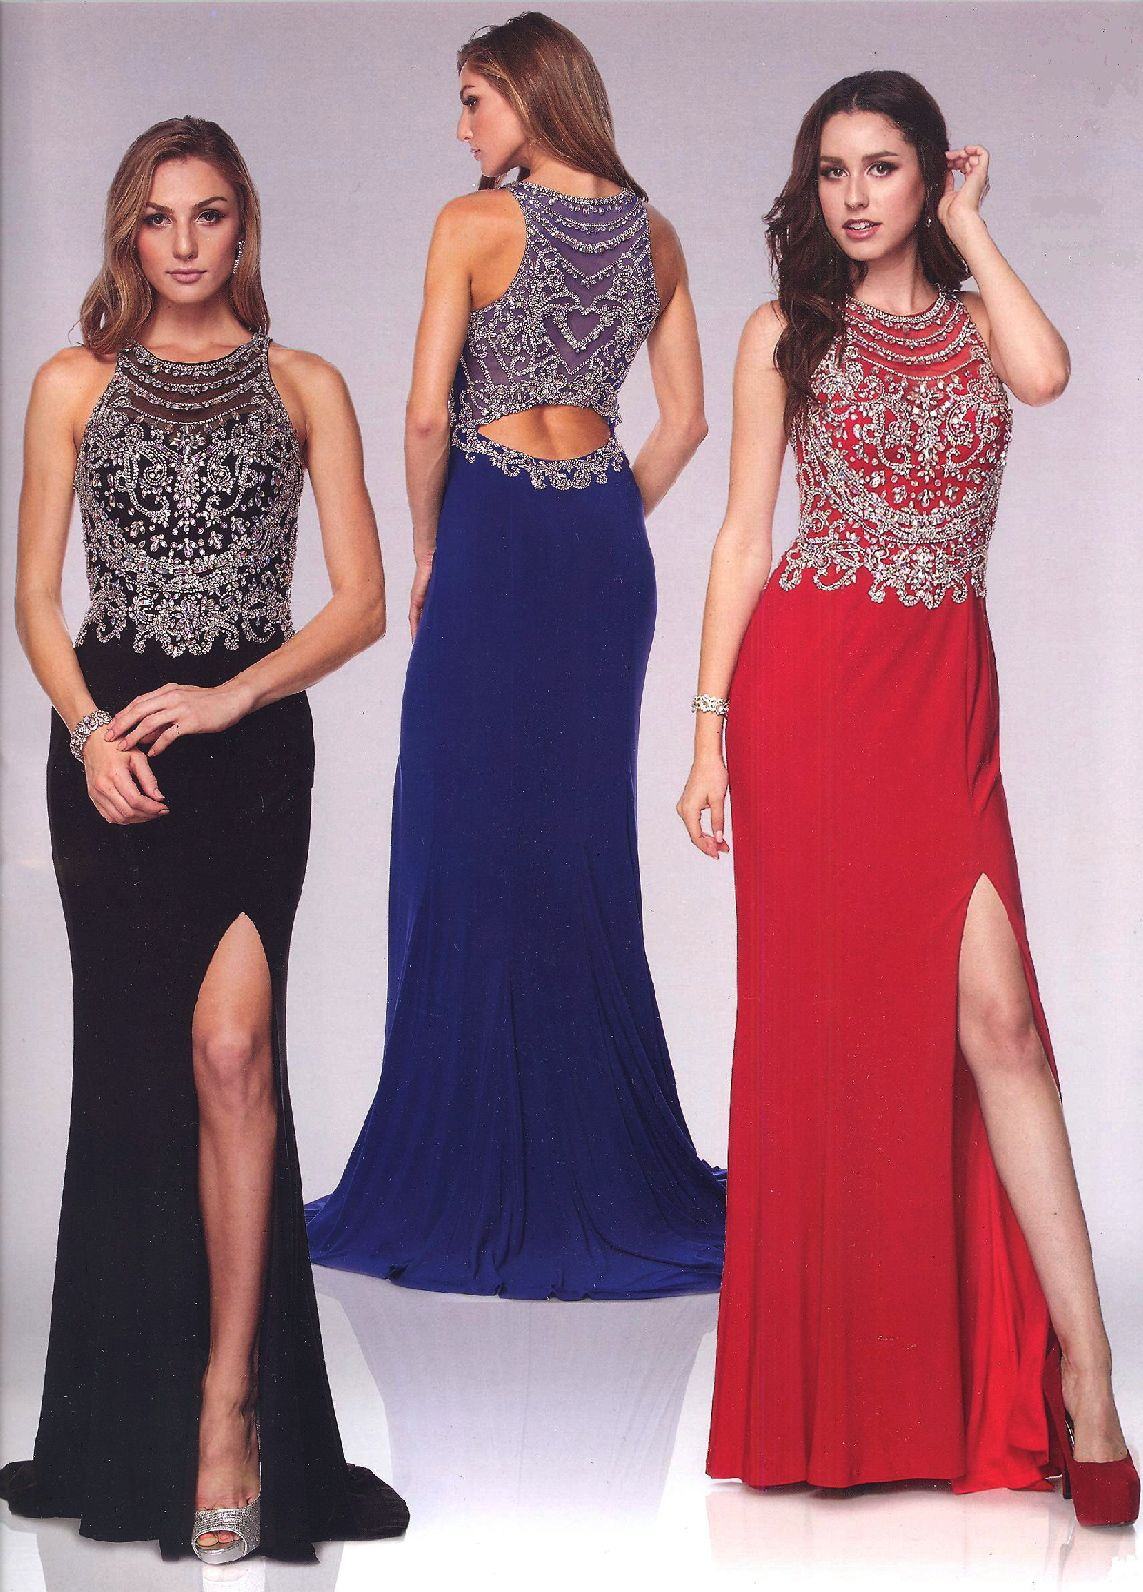 Prom dresses evening dresses under ucbrueajtucbruesheer jewel